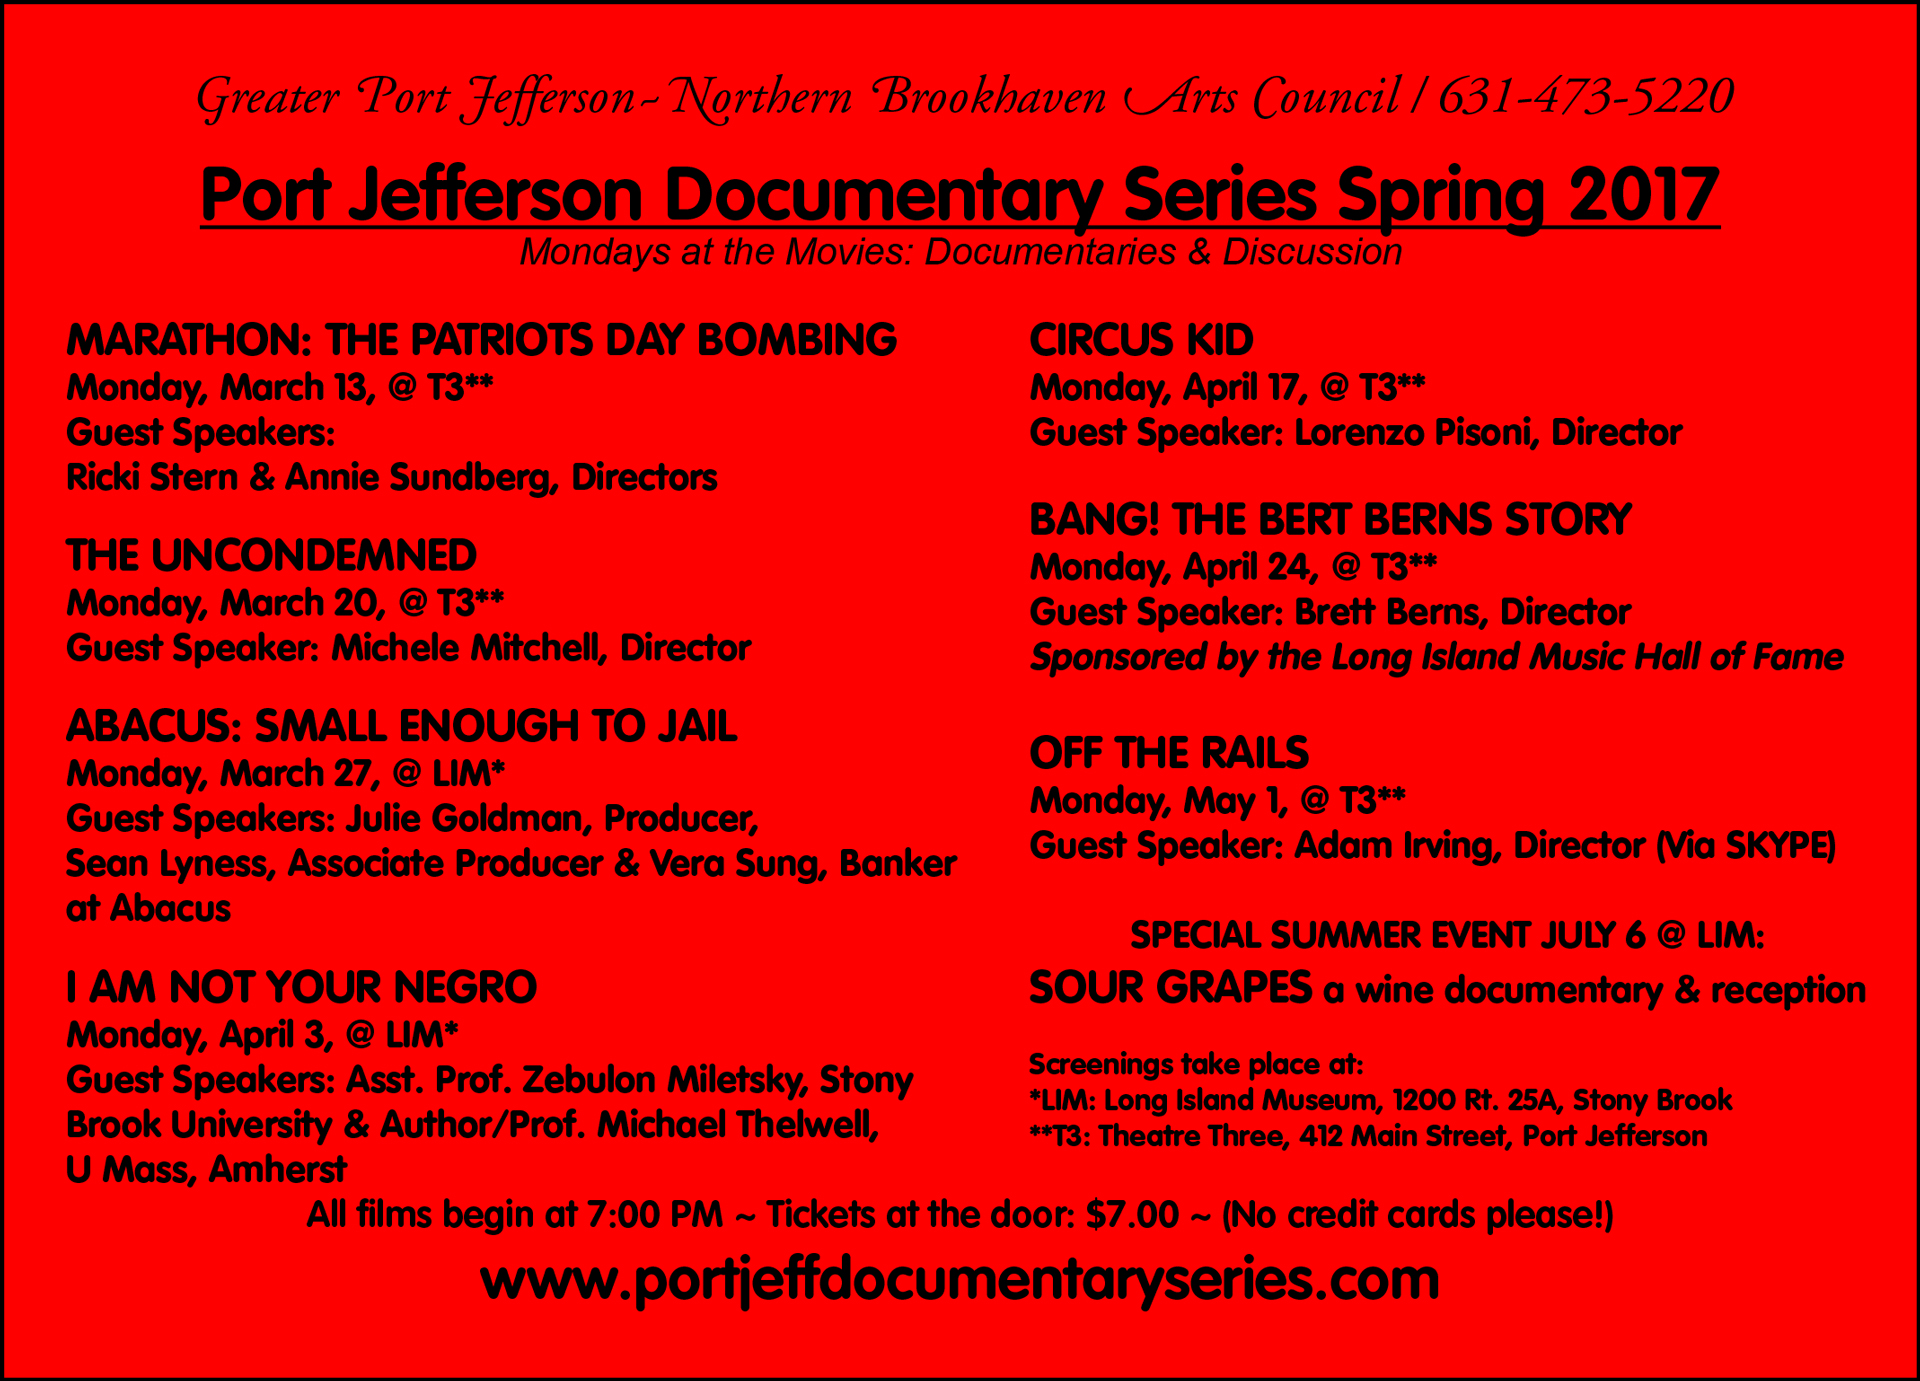 Spring 2017 Red Card port jeff documentary series